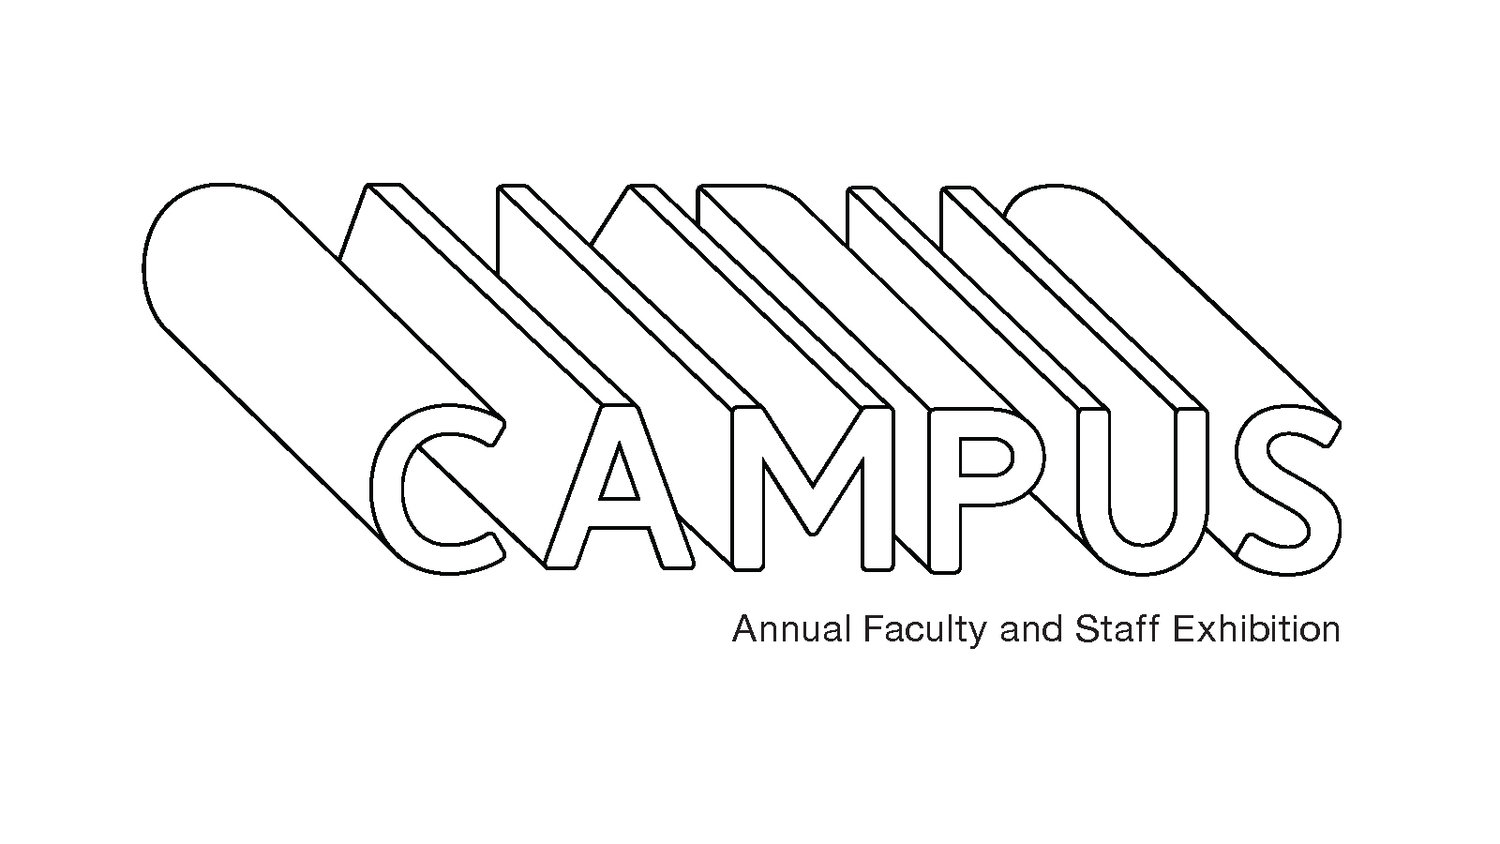 Logo of the word CAMPUS in thin black type over a white background